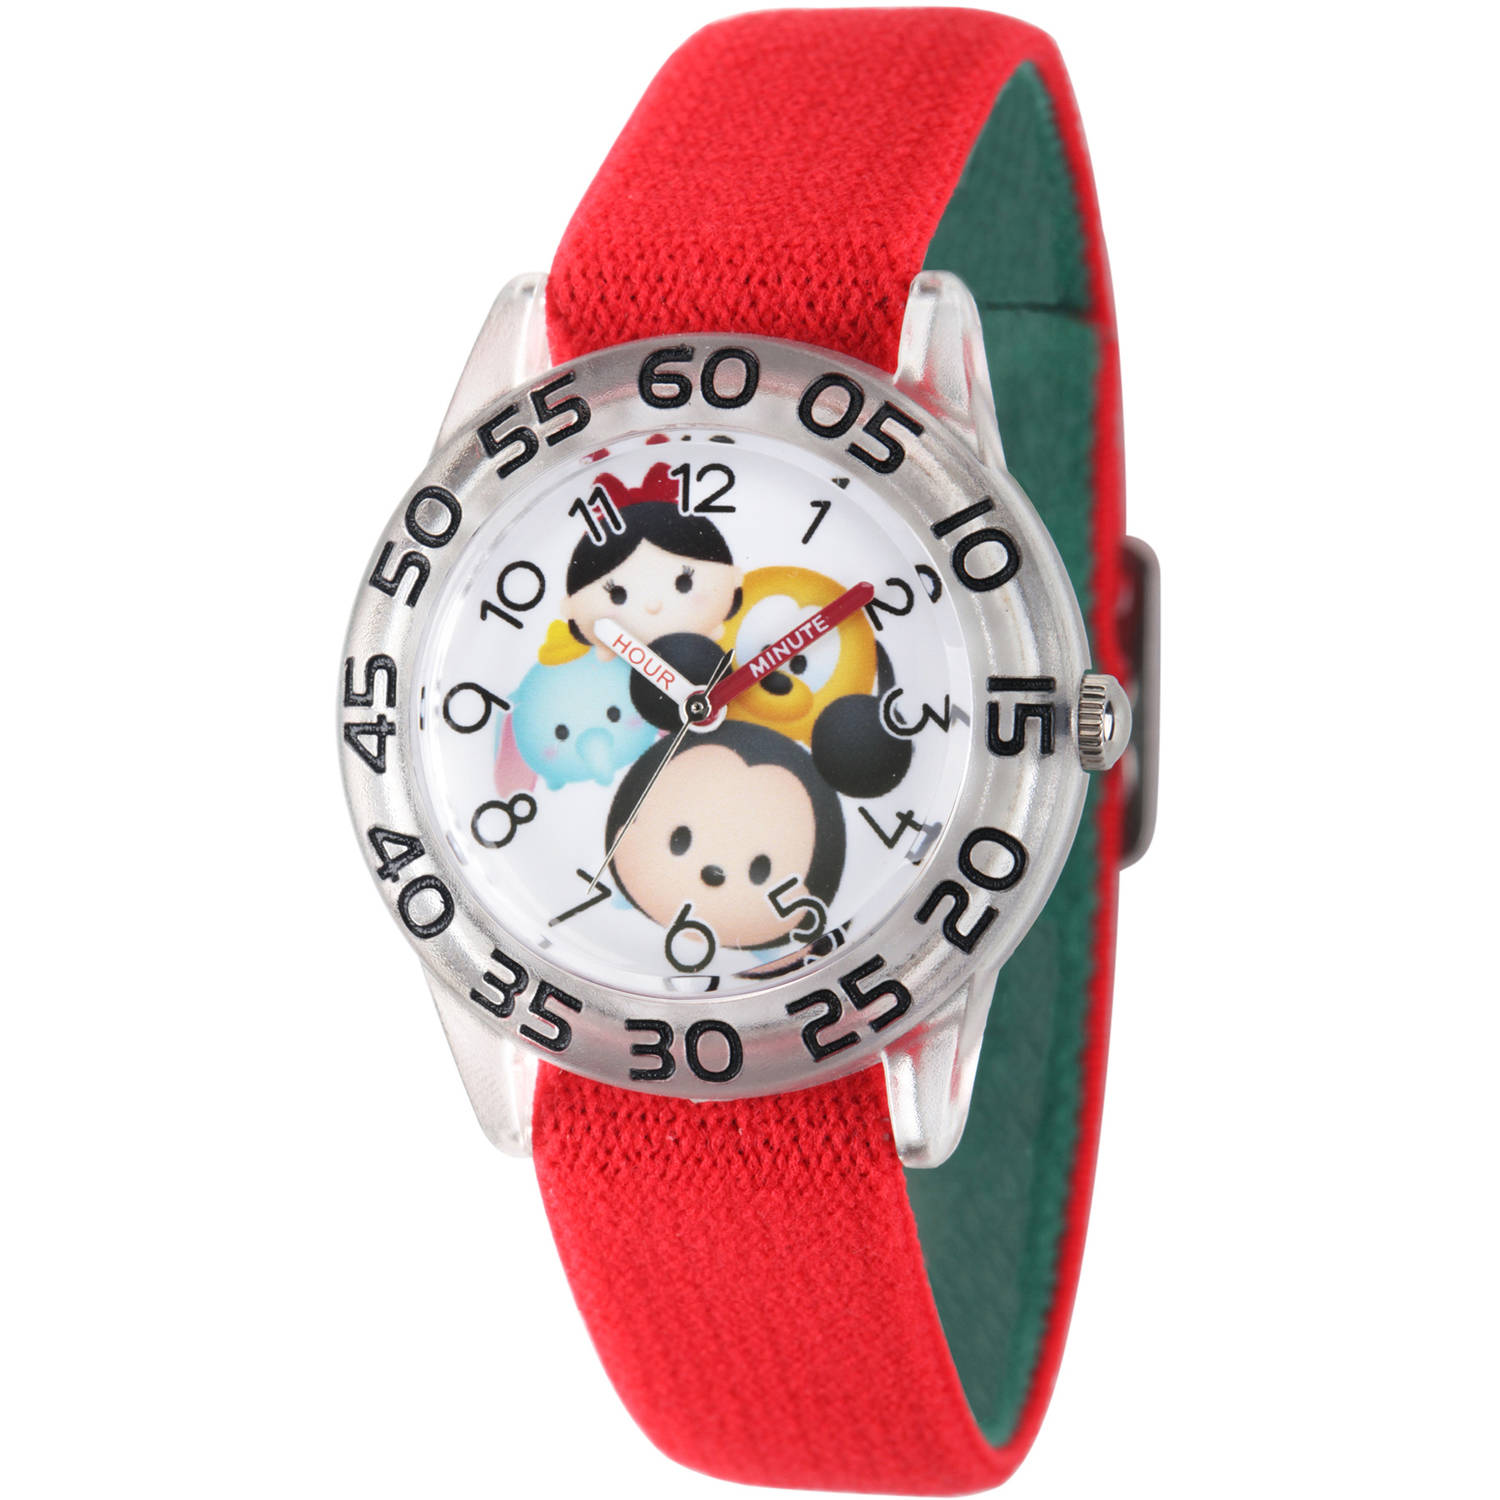 Disney Tsum Tsum,  Mickey Mouse, Dumbo, Mike Wazowski and Snow White Girls' Clear Plastic Time Teacher Watch, Reversible Red and Green Nylon Strap